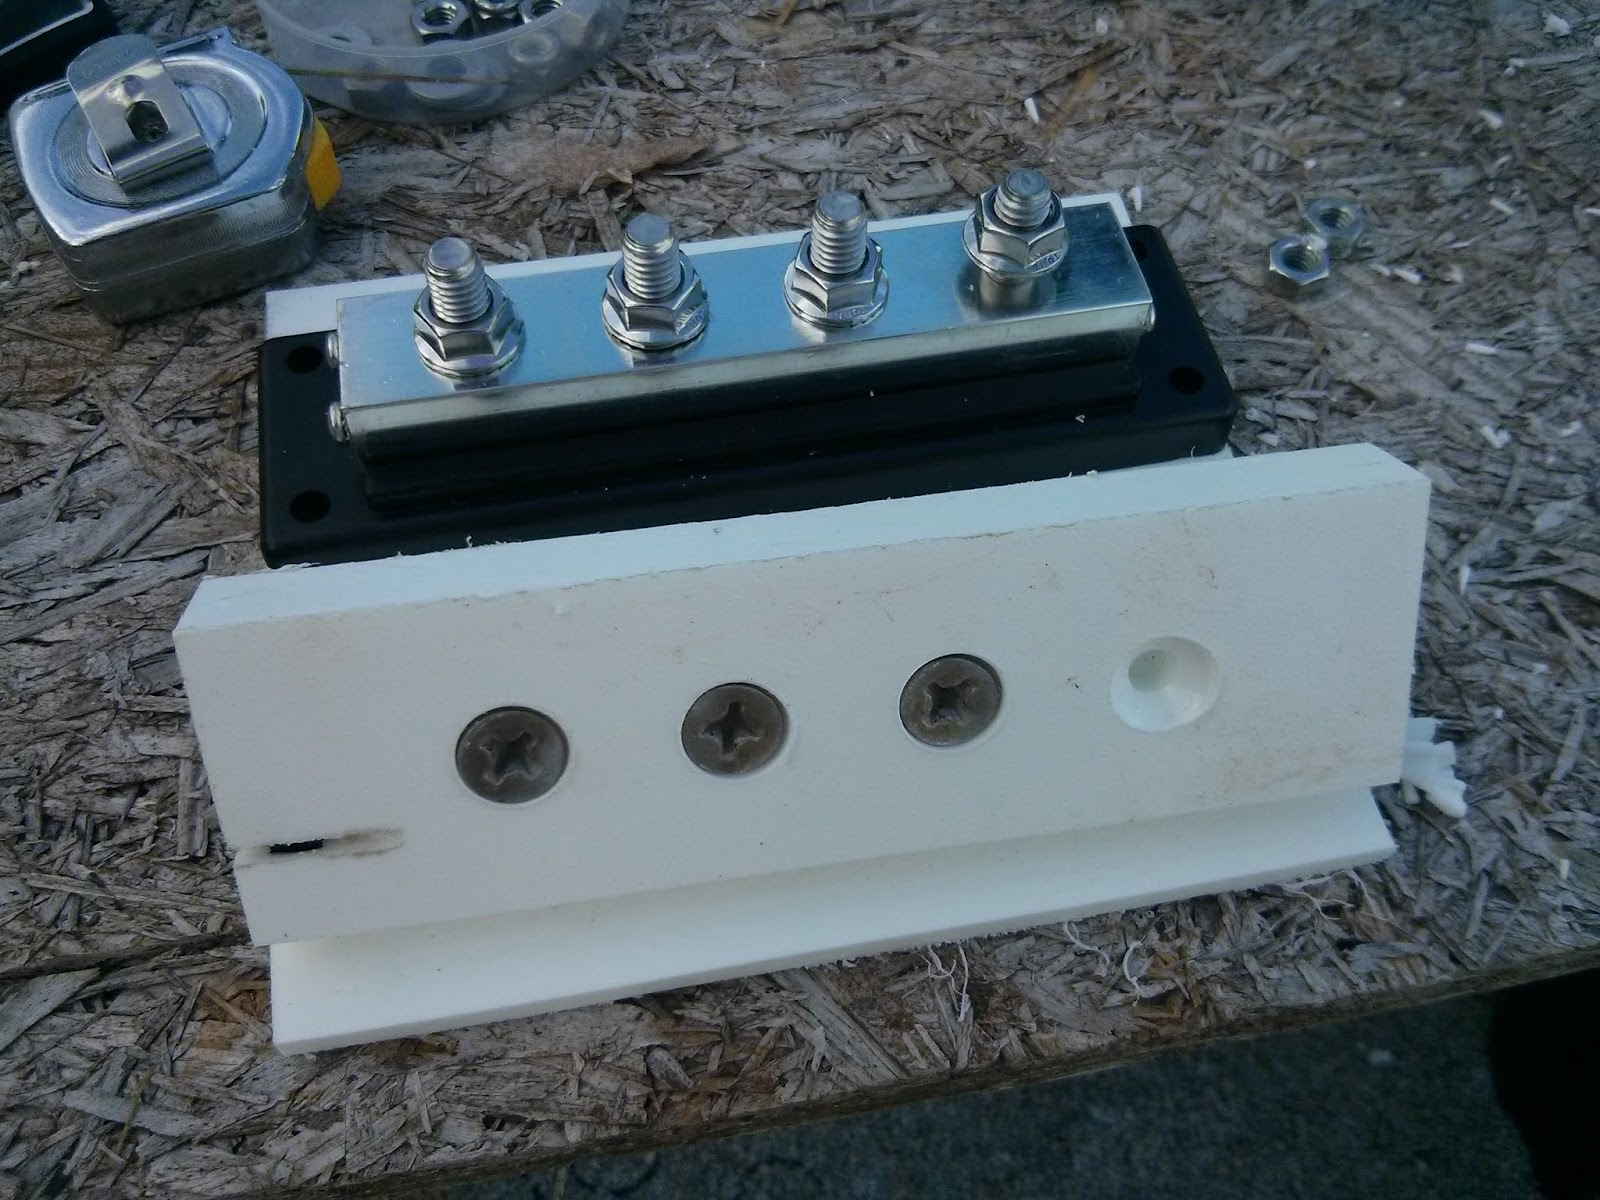 wrg 8370 homemade fuse box for boathomemade fuse box for boat [ 1600 x 1200 Pixel ]